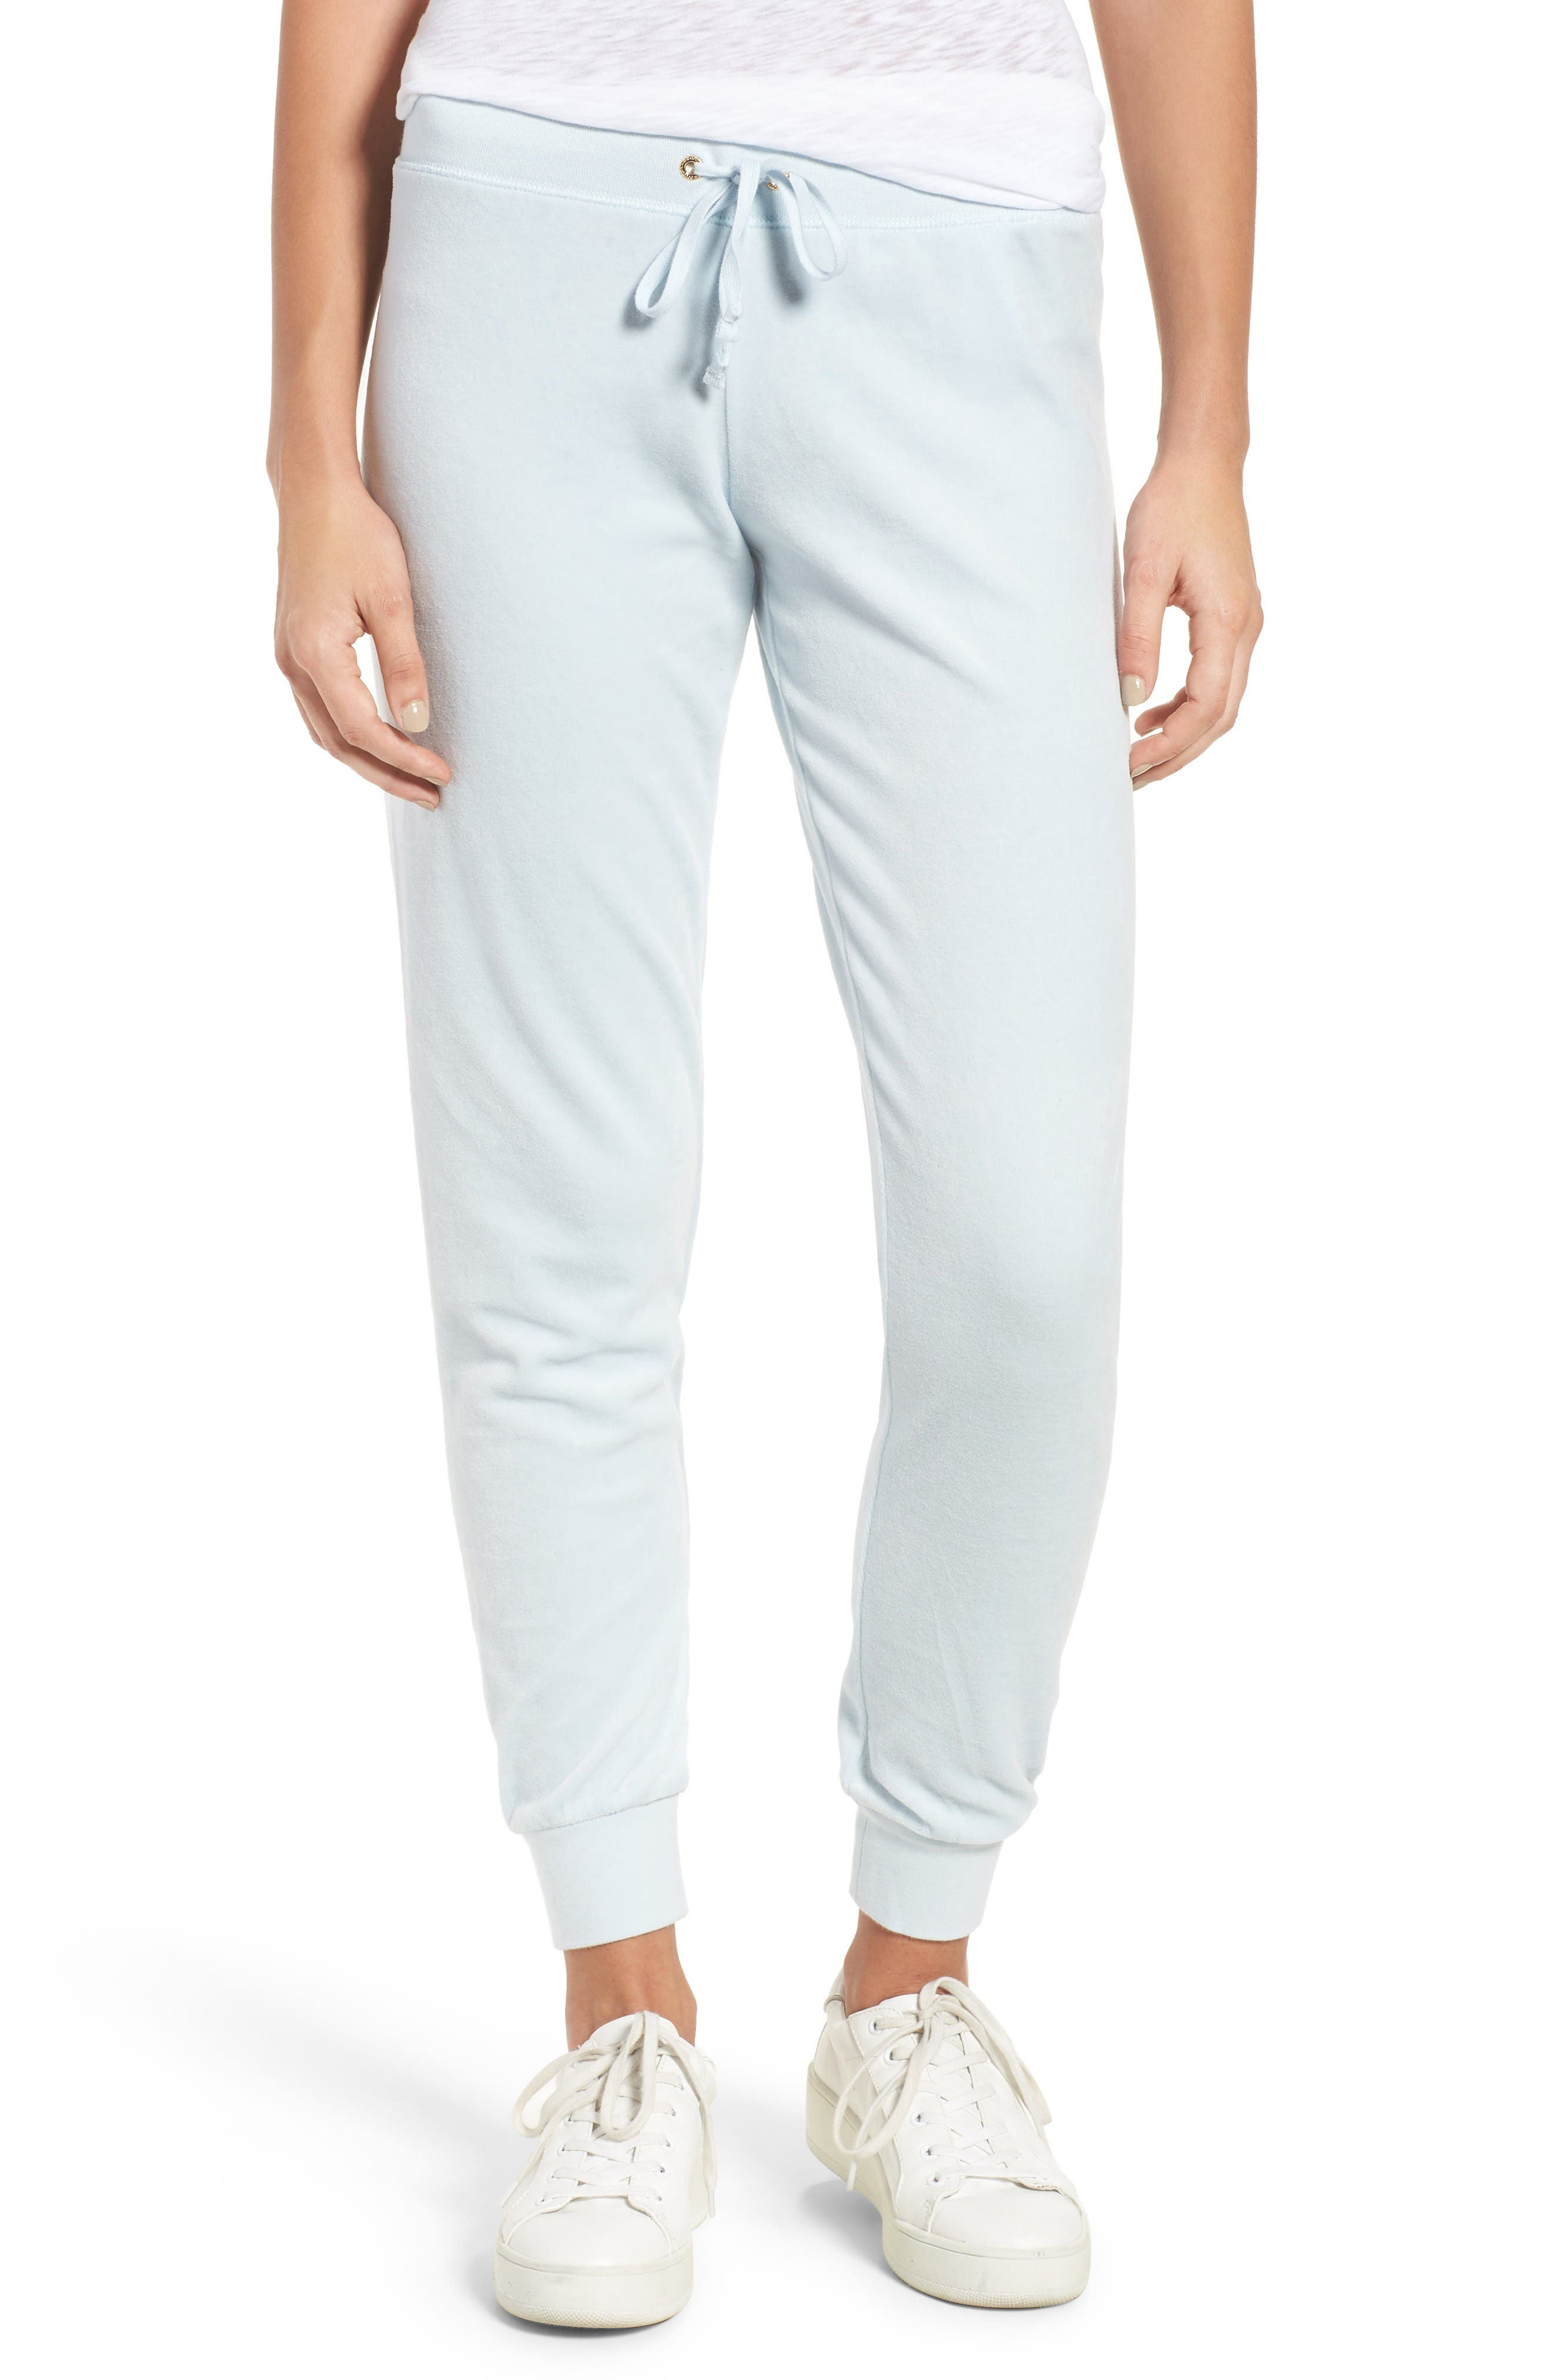 Juicy Couture Zuma Microterry Track Pants